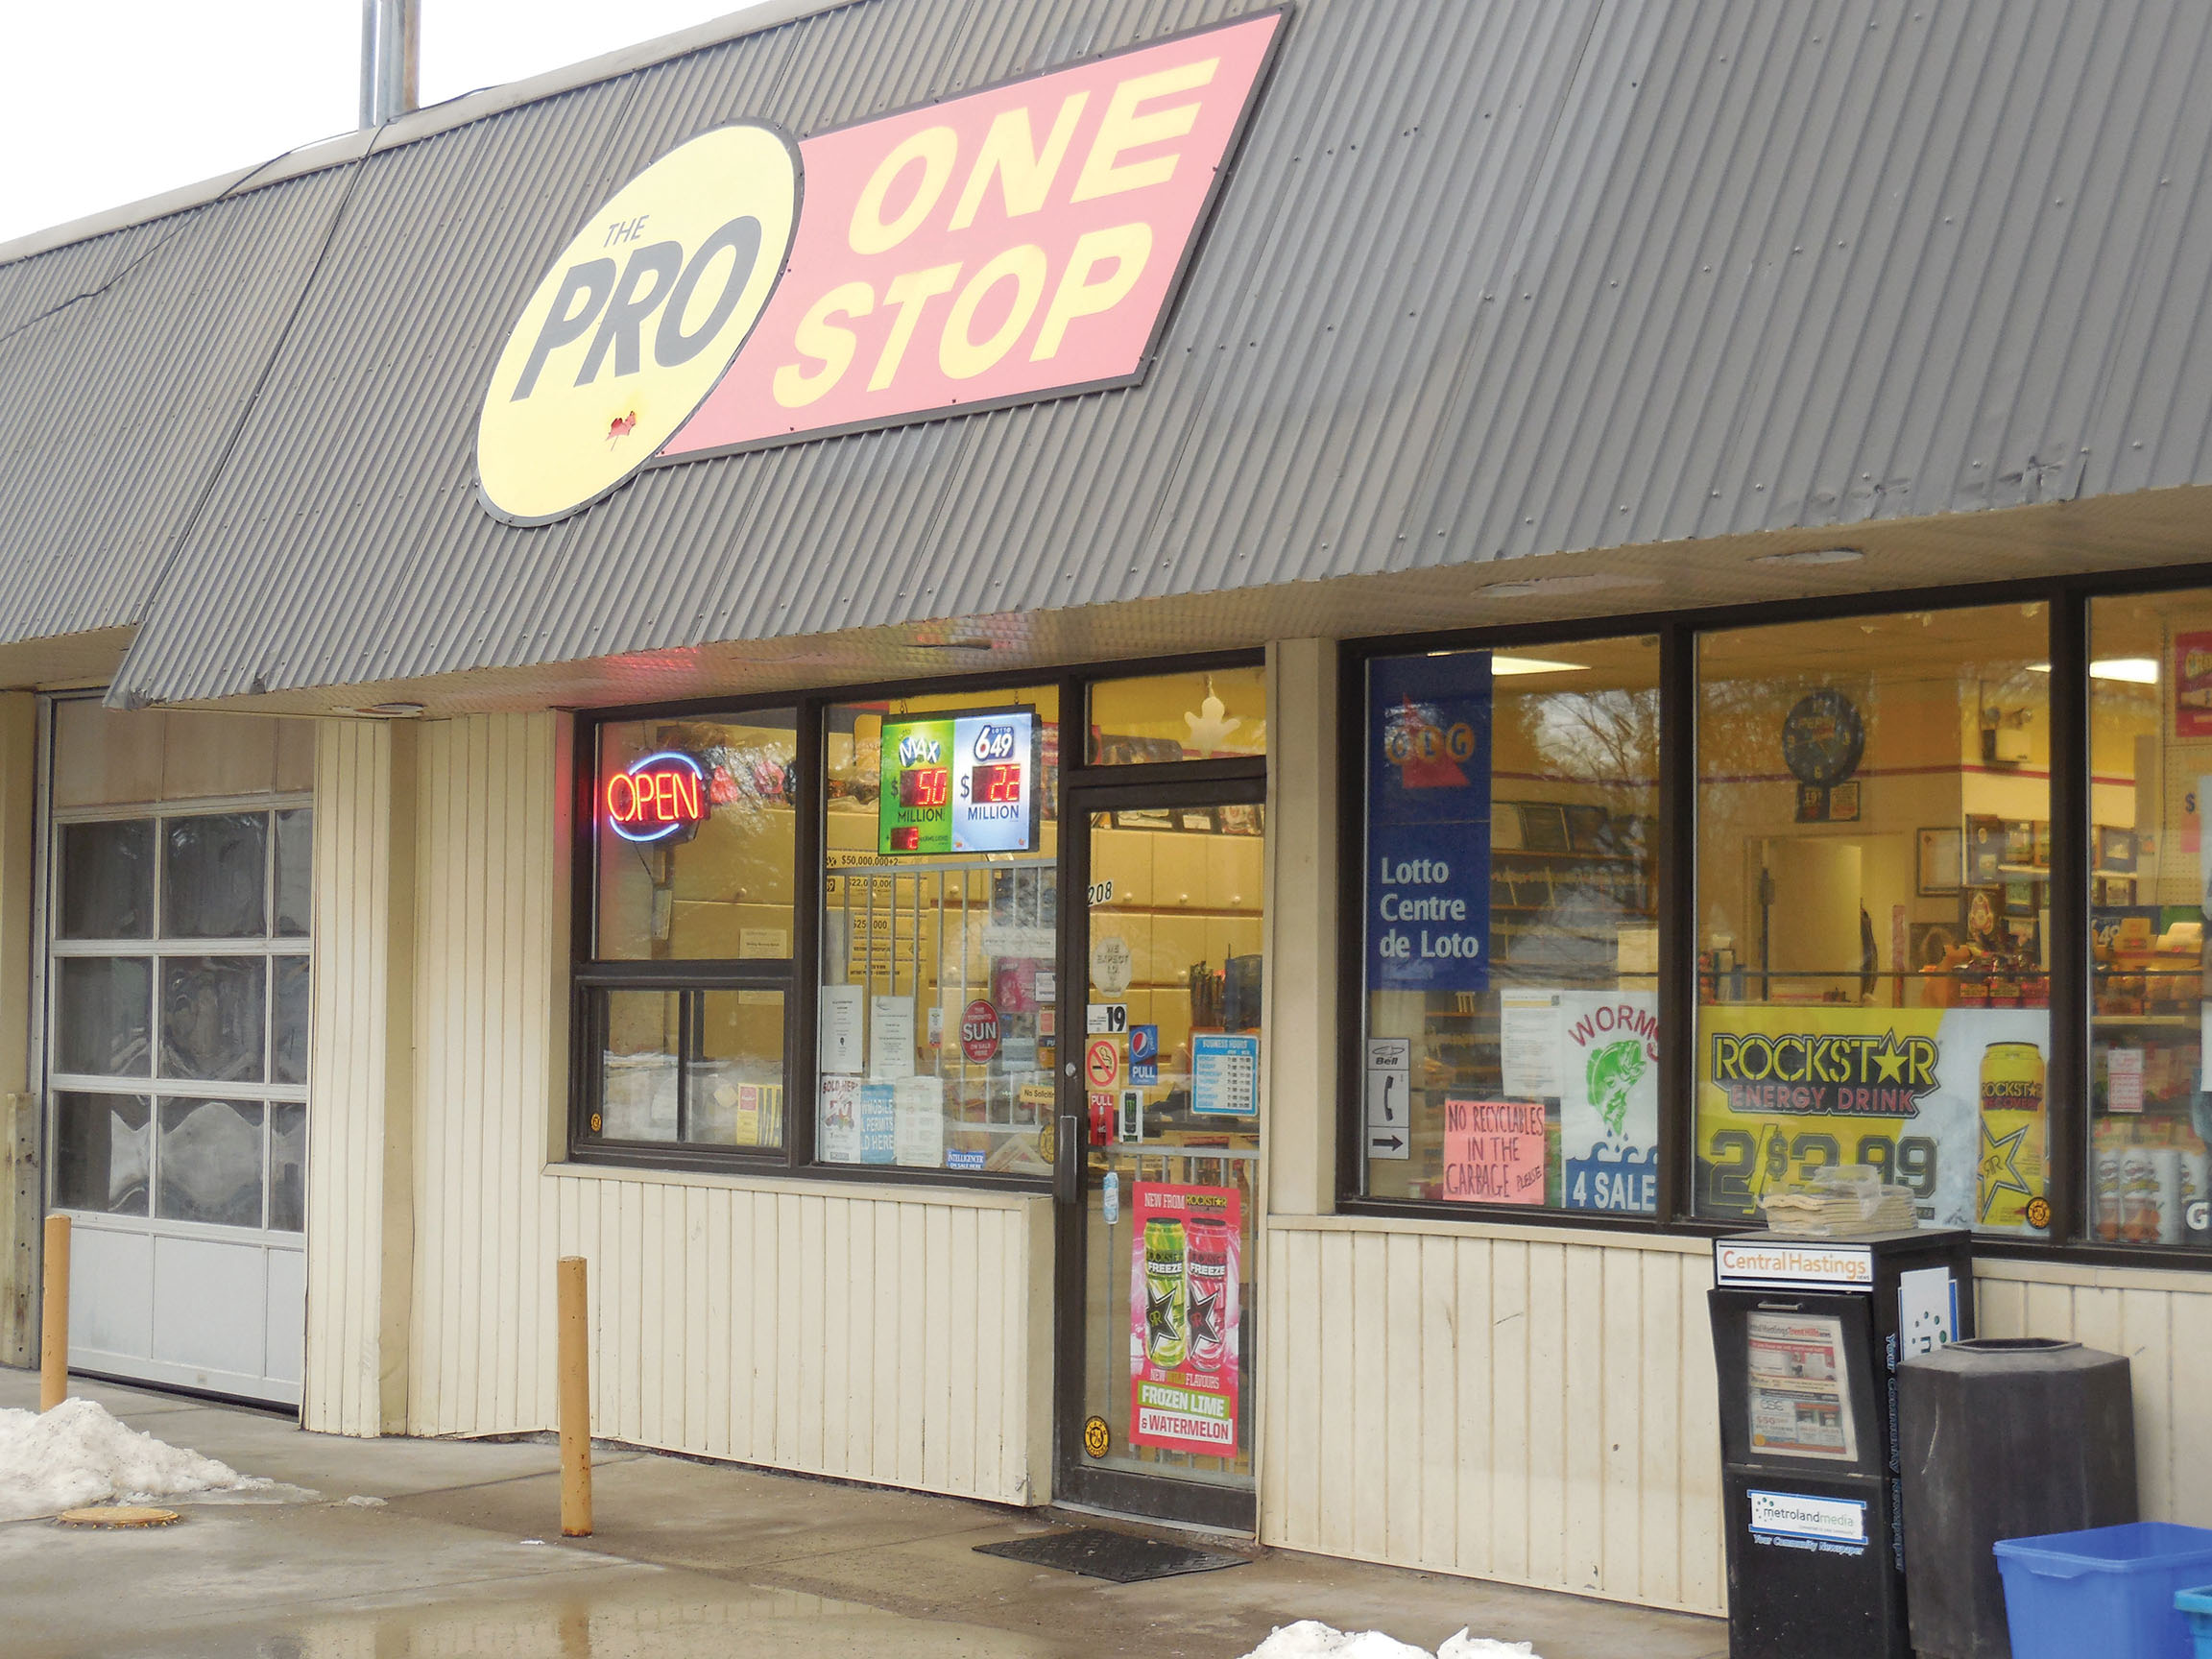 Over the past 25 years the Pro One stop has become deeply woven into the fabric of the community of Stirling.